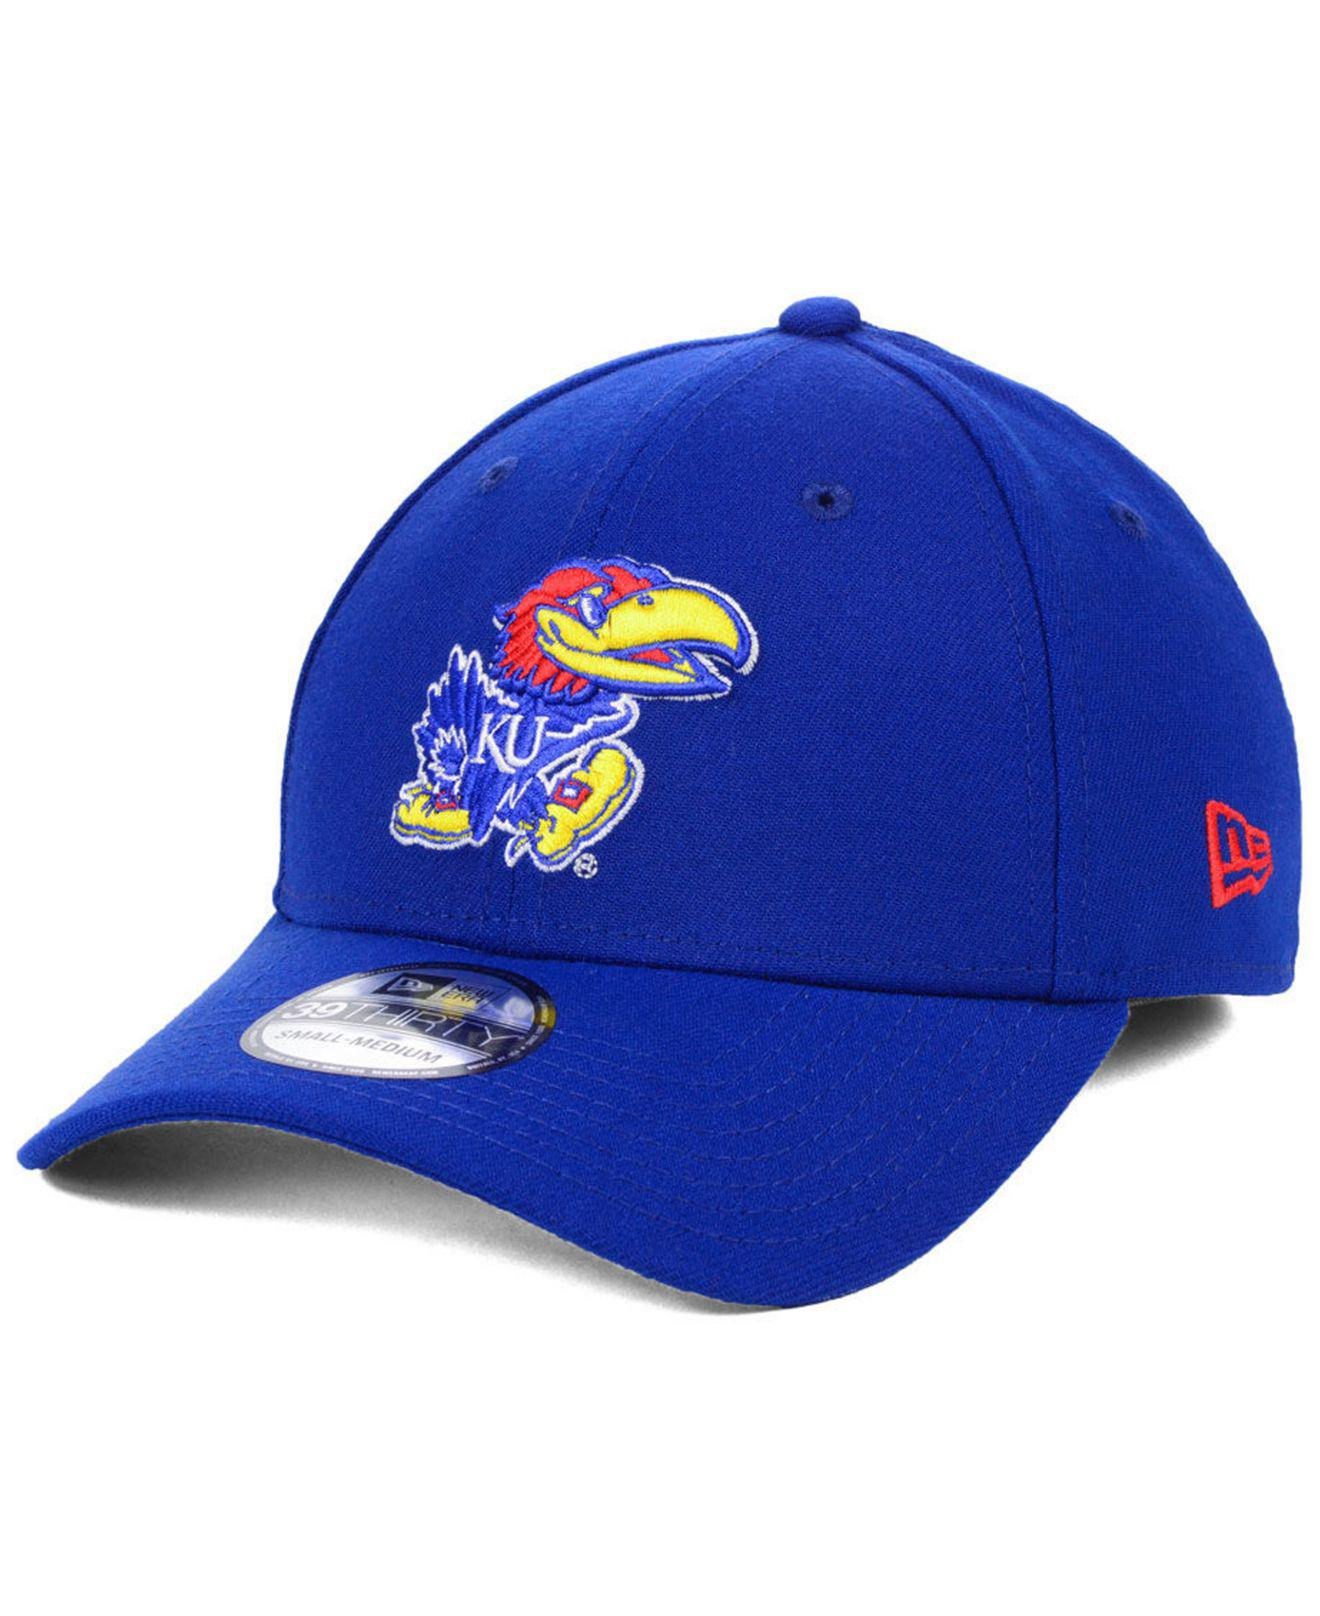 a25229c3383 Lyst - Ktz Kansas Jayhawks College Classic 39thirty Cap in Blue for Men